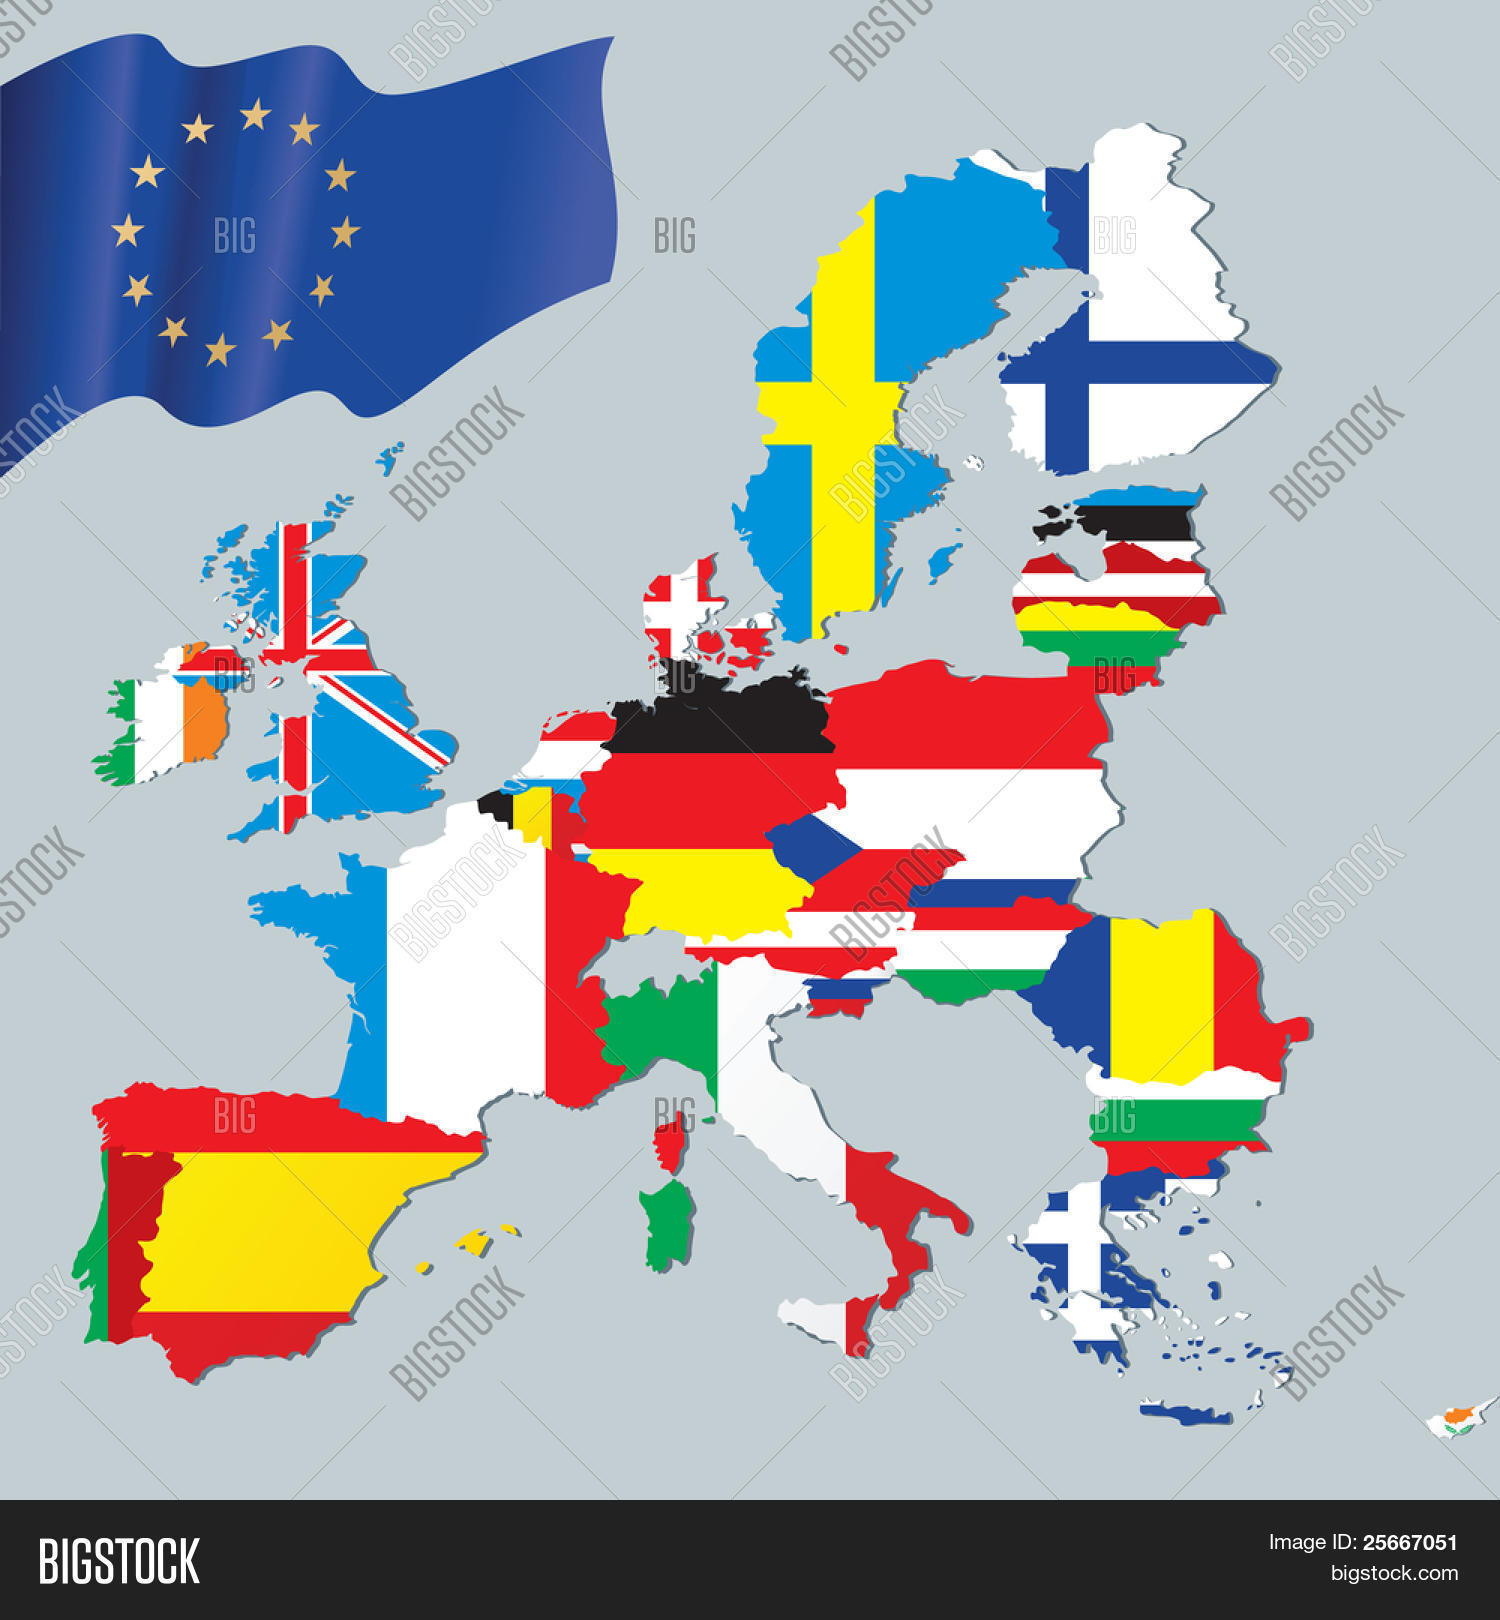 European Union Map Image & Photo (Free Trial) | Bigstock